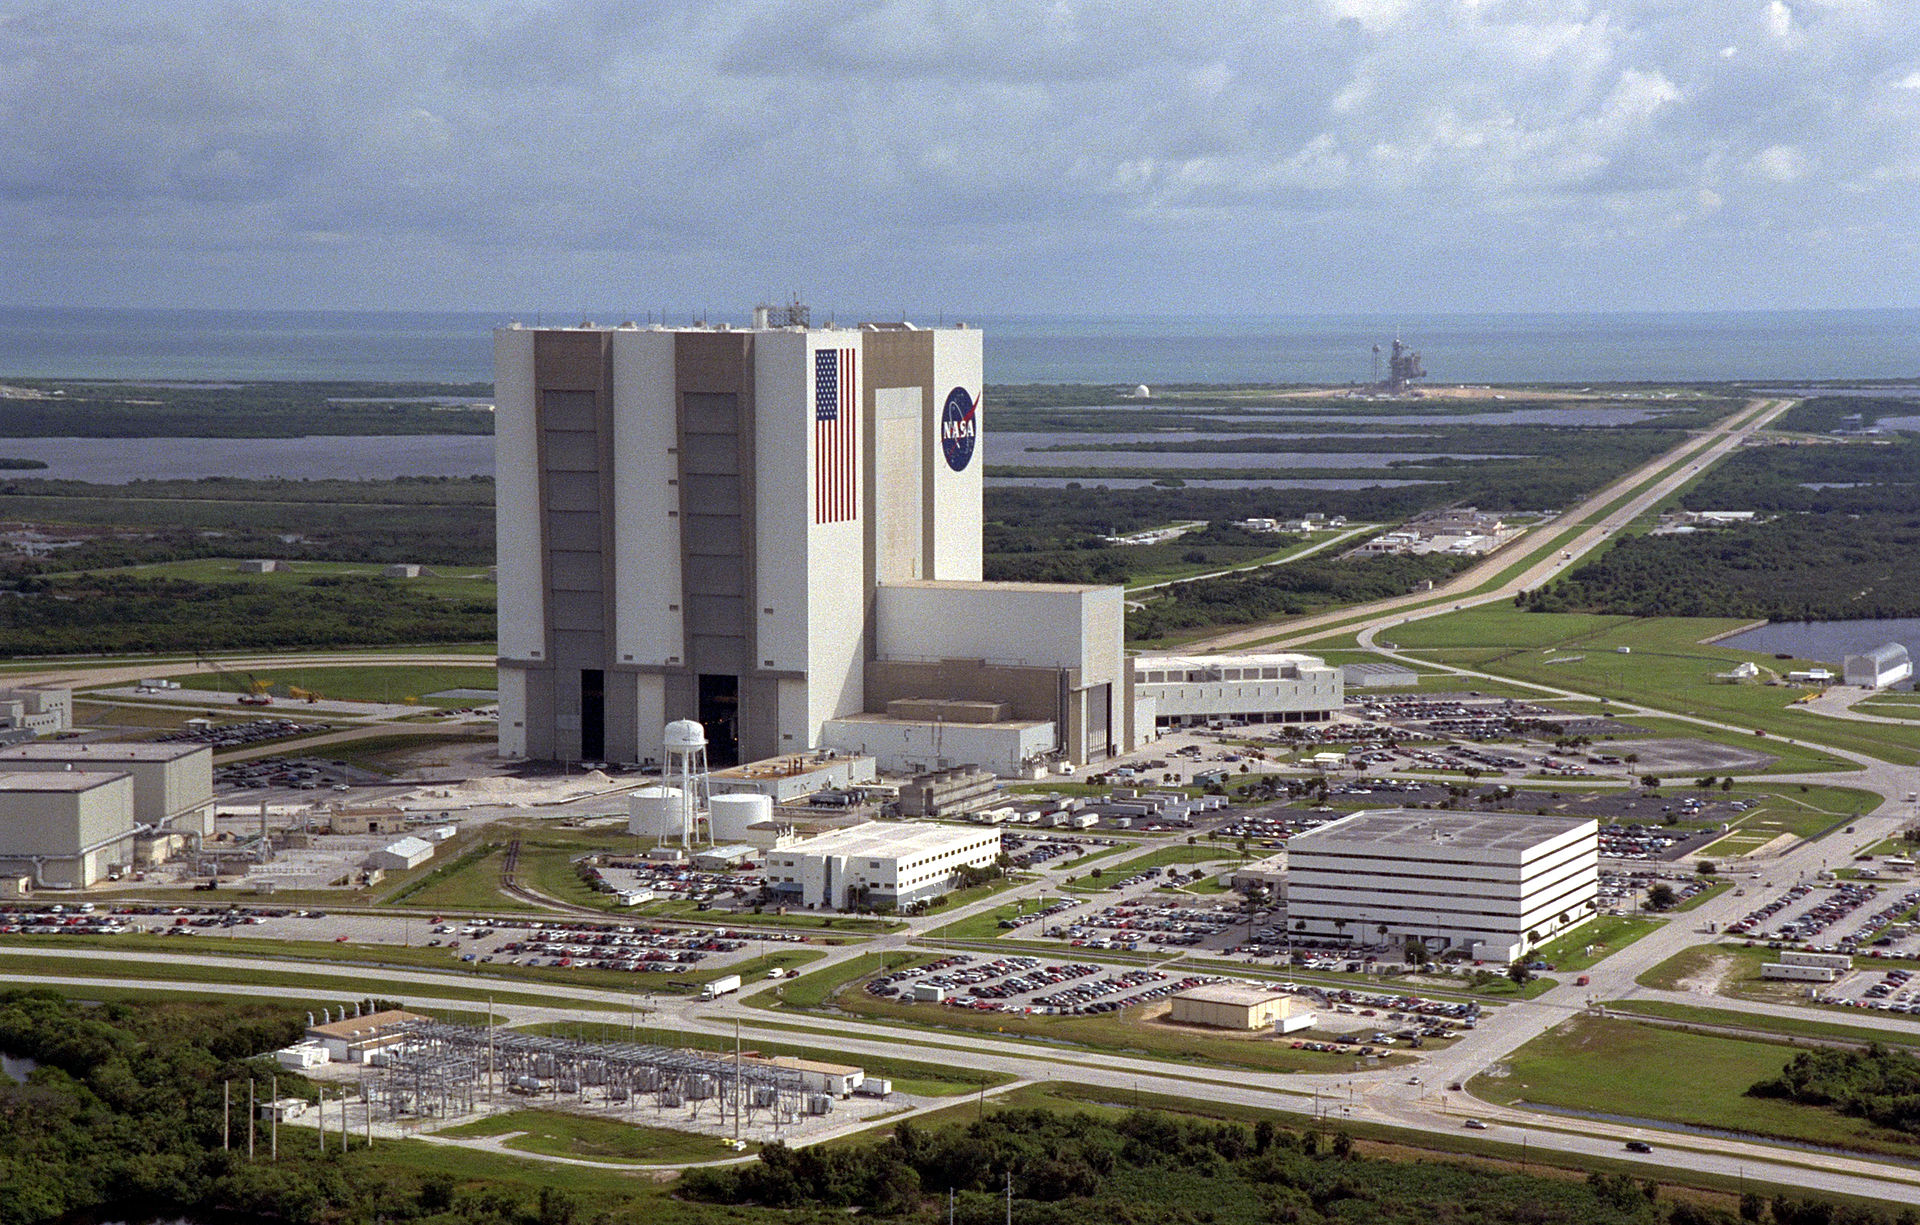 Launch Complex 39 and the Vehicle Assembly Building (VAB) at NASA's Kennedy Space Center are situated ten miles north of Port Canaveral (Image: NASA)